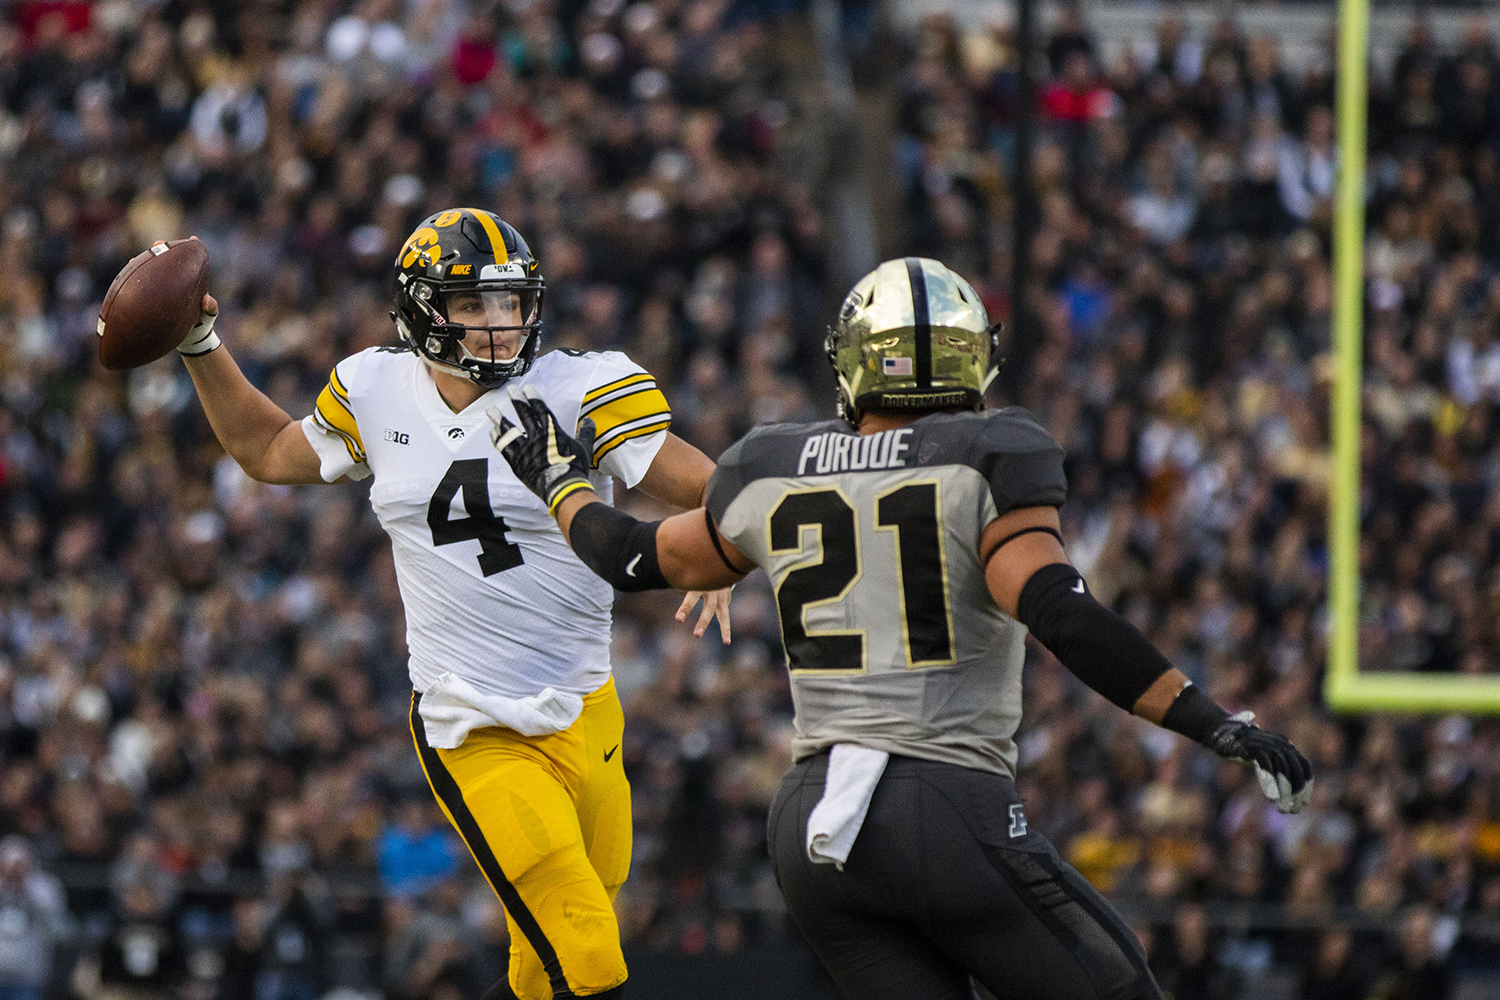 Iowa quarterback Nate Stanley throws a pass during the Iowa/Purdue game at Ross-Ade Stadium in West Lafayette, Ind. The Boilermakers defeated the Hawkeyes, 38-36, with a last second field goal.